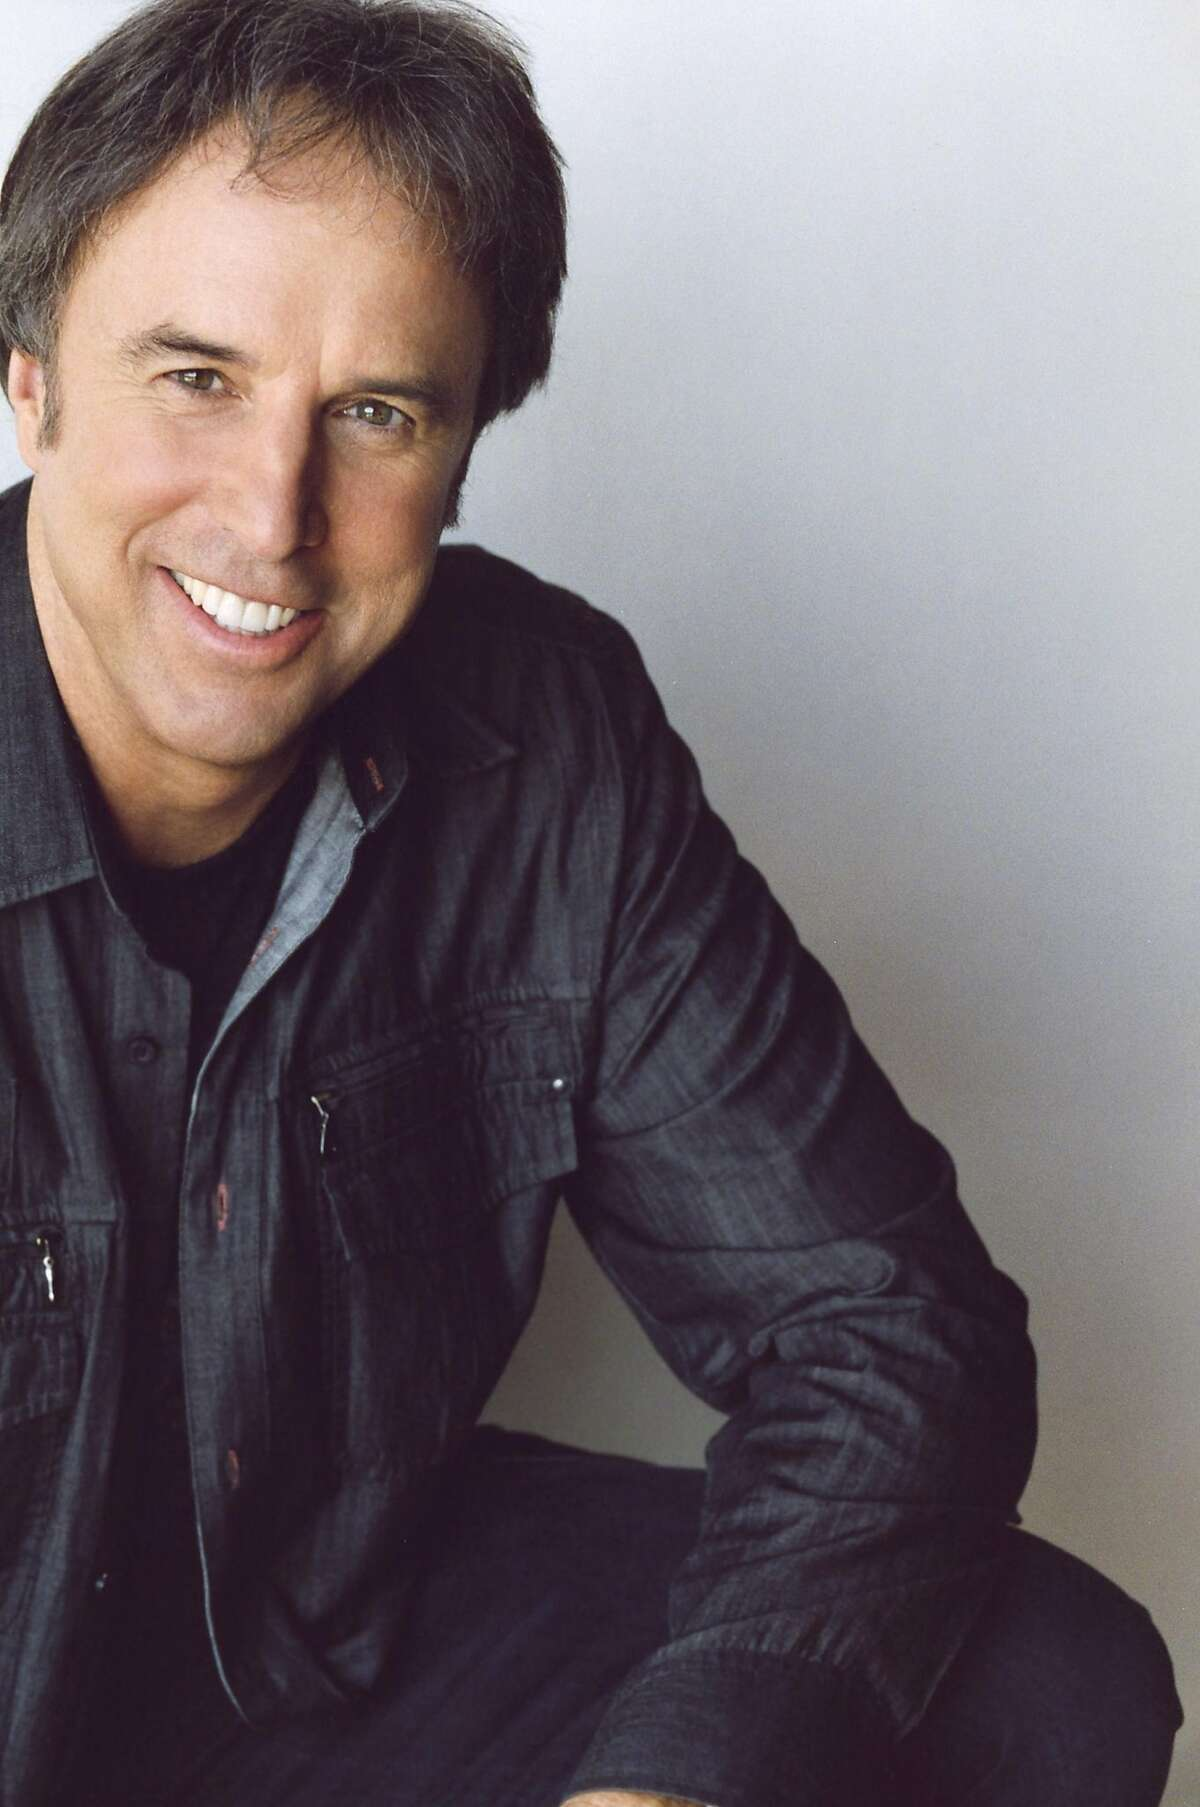 Kevin Nealon (Saturday Night Live/Weeds), who will perform at Improv Houston